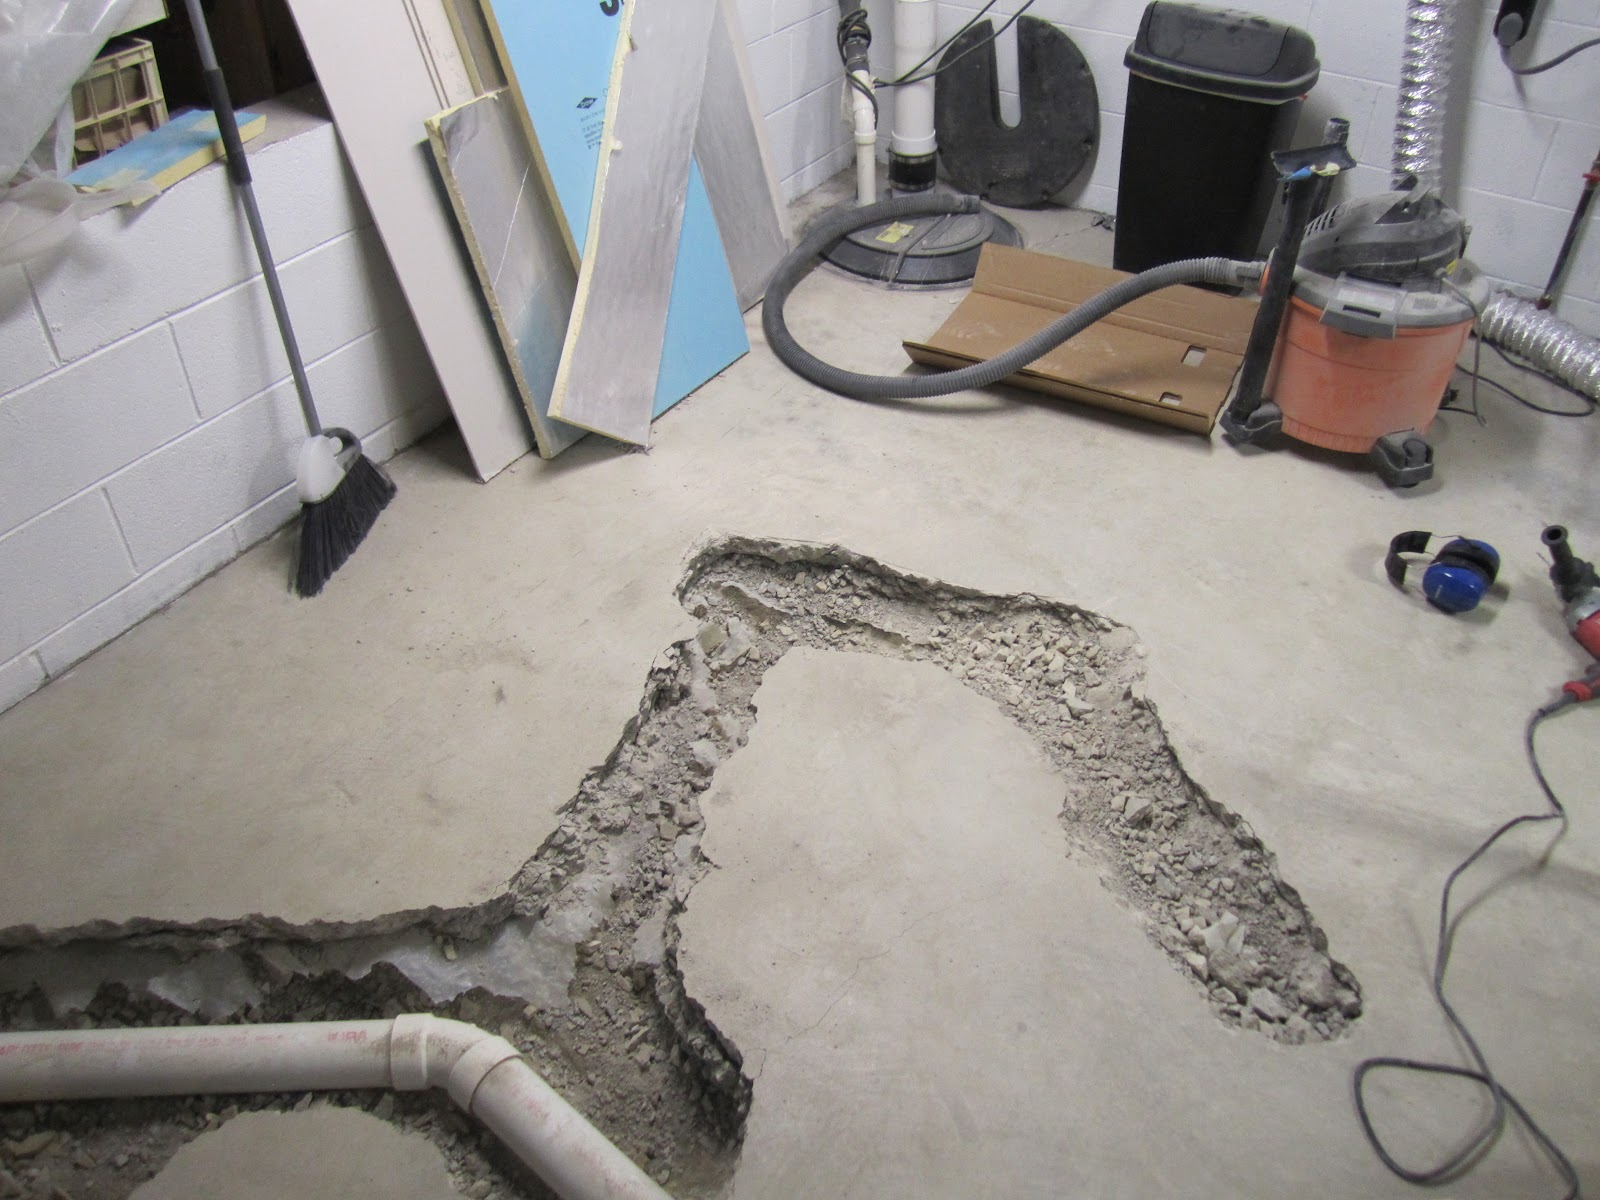 Projects Of Plenty Basement Build Update Stud Walls And Underslab Plumbing With A Surprise